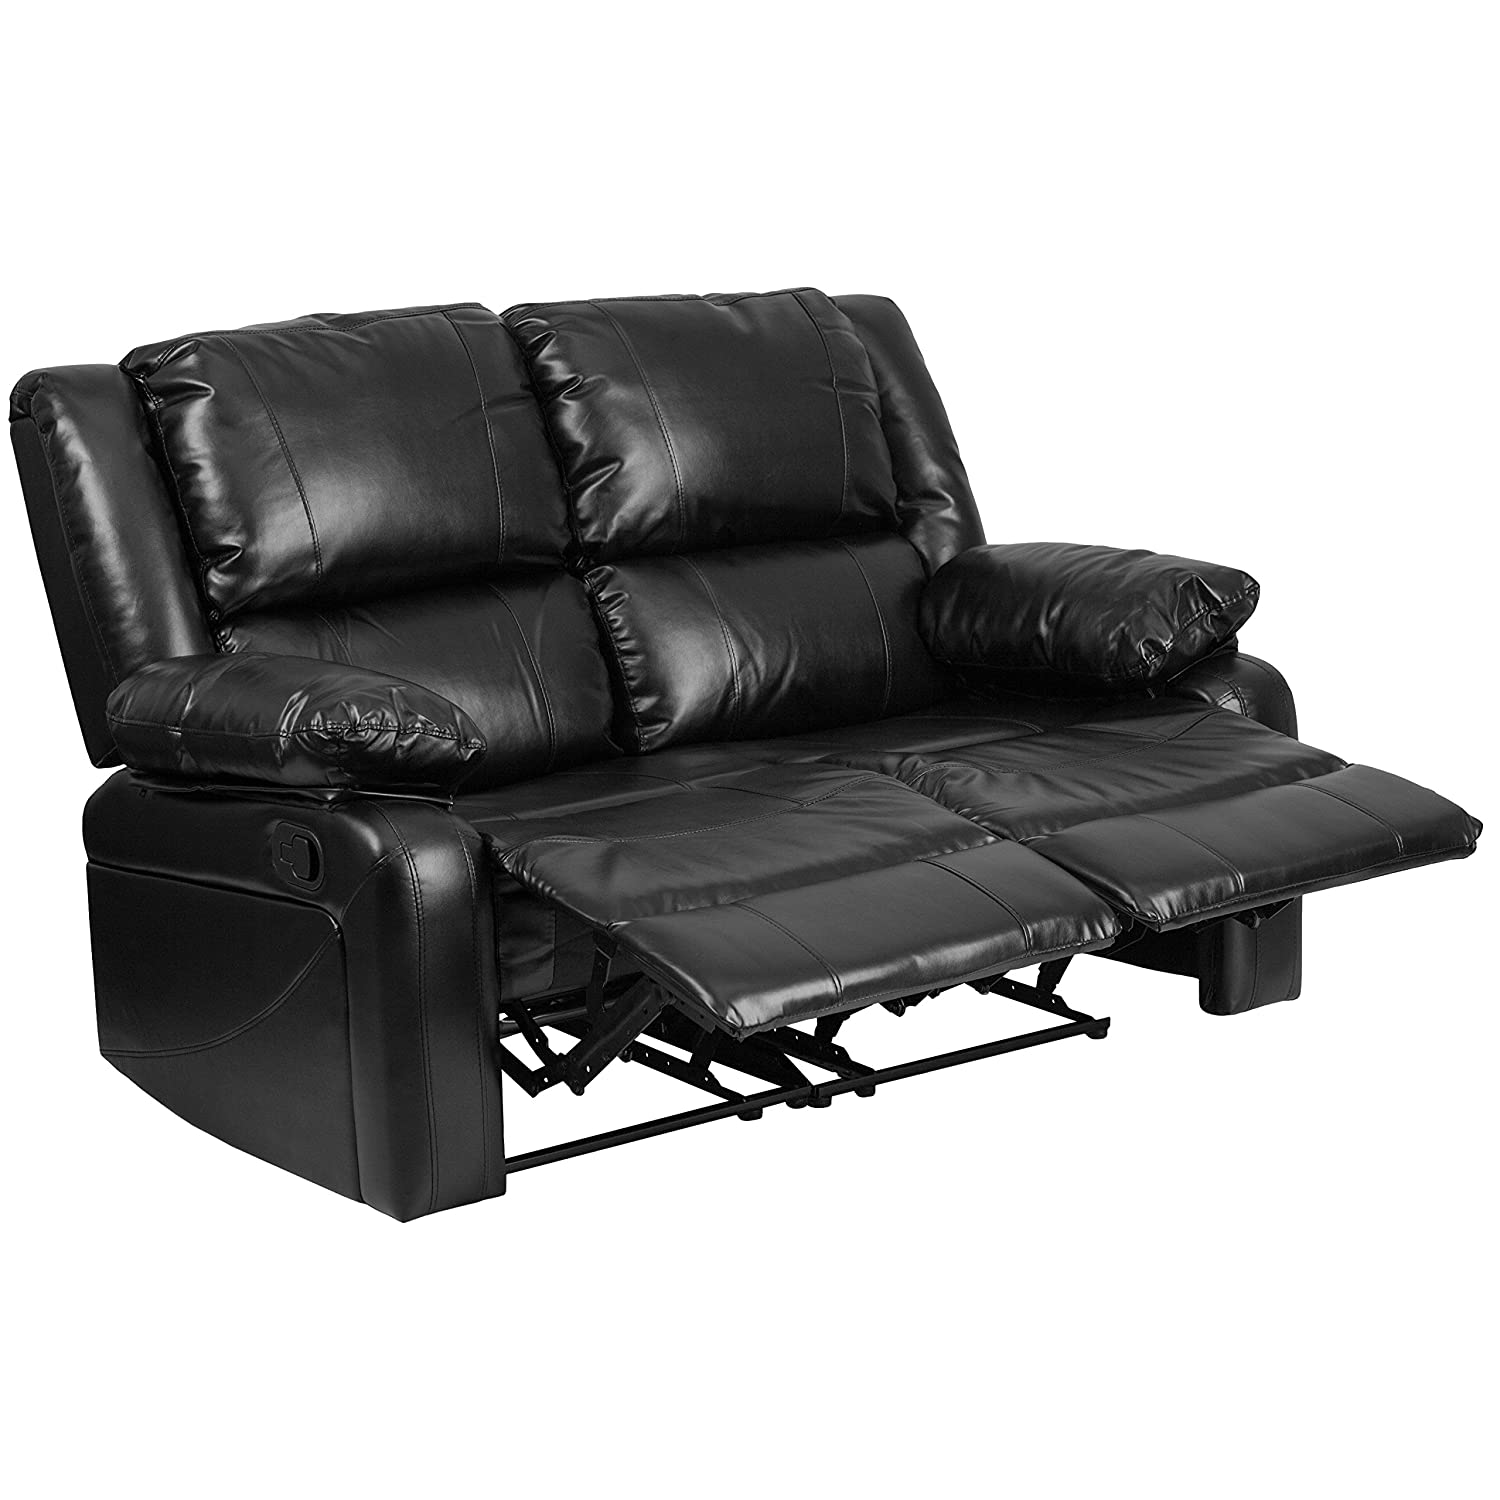 Luxury Recliner Sofa Chair Rtty1 Com Rtty1 Com